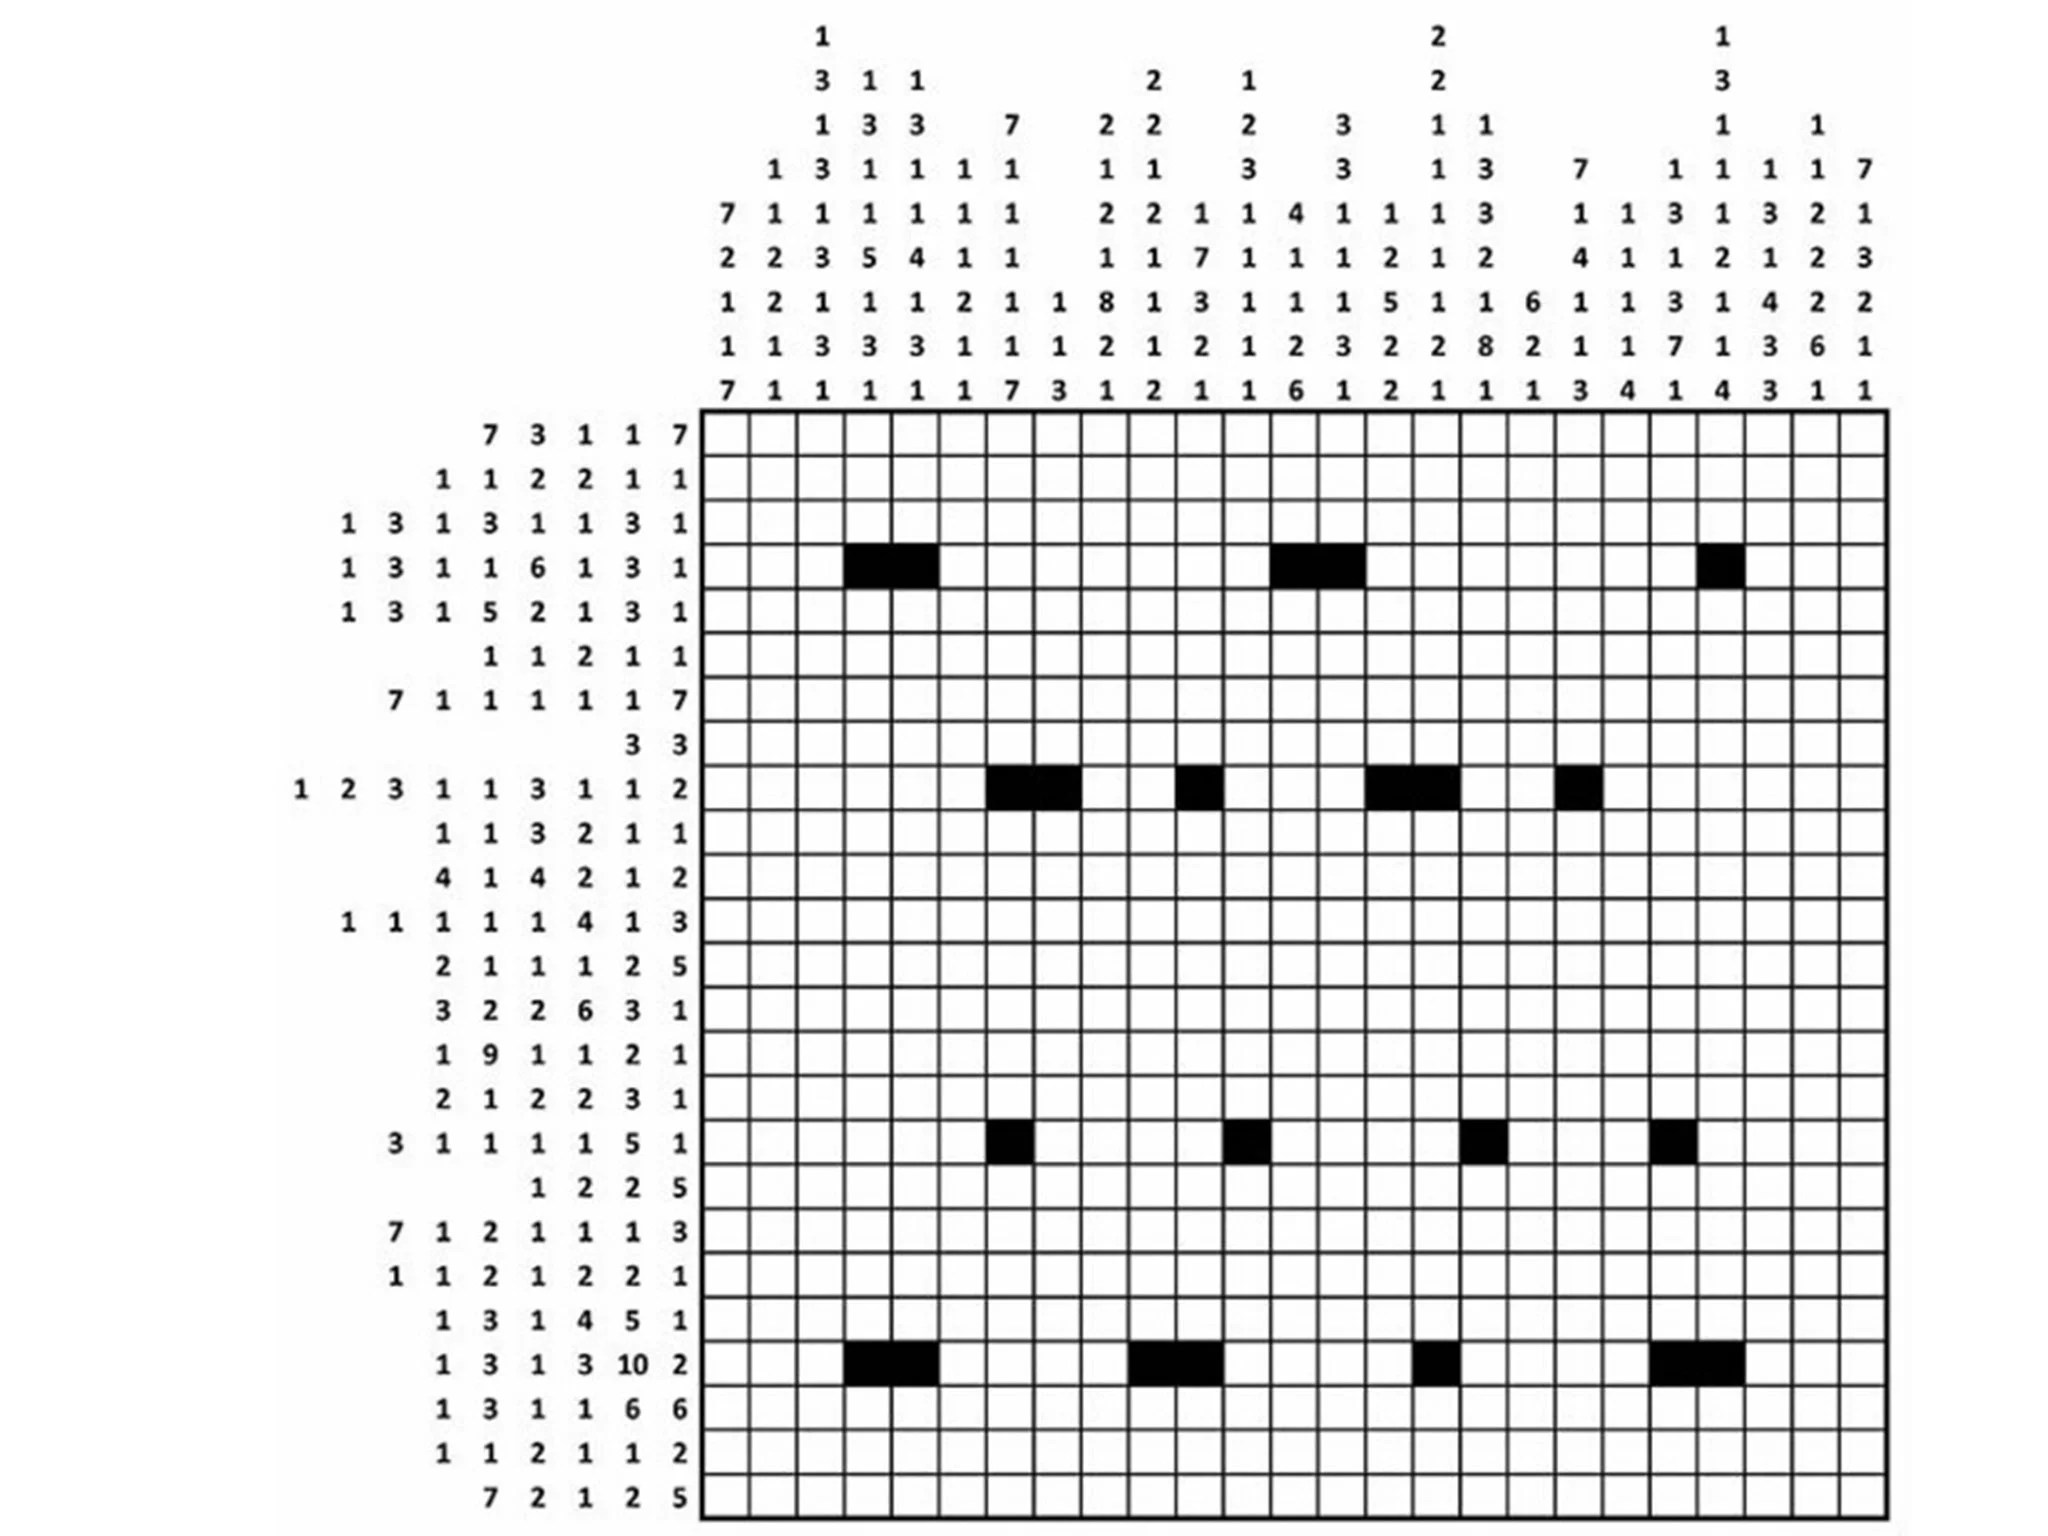 Here S Who Came Closest To Solving Gchq S Fiendishly Difficult Christmas Puzzle